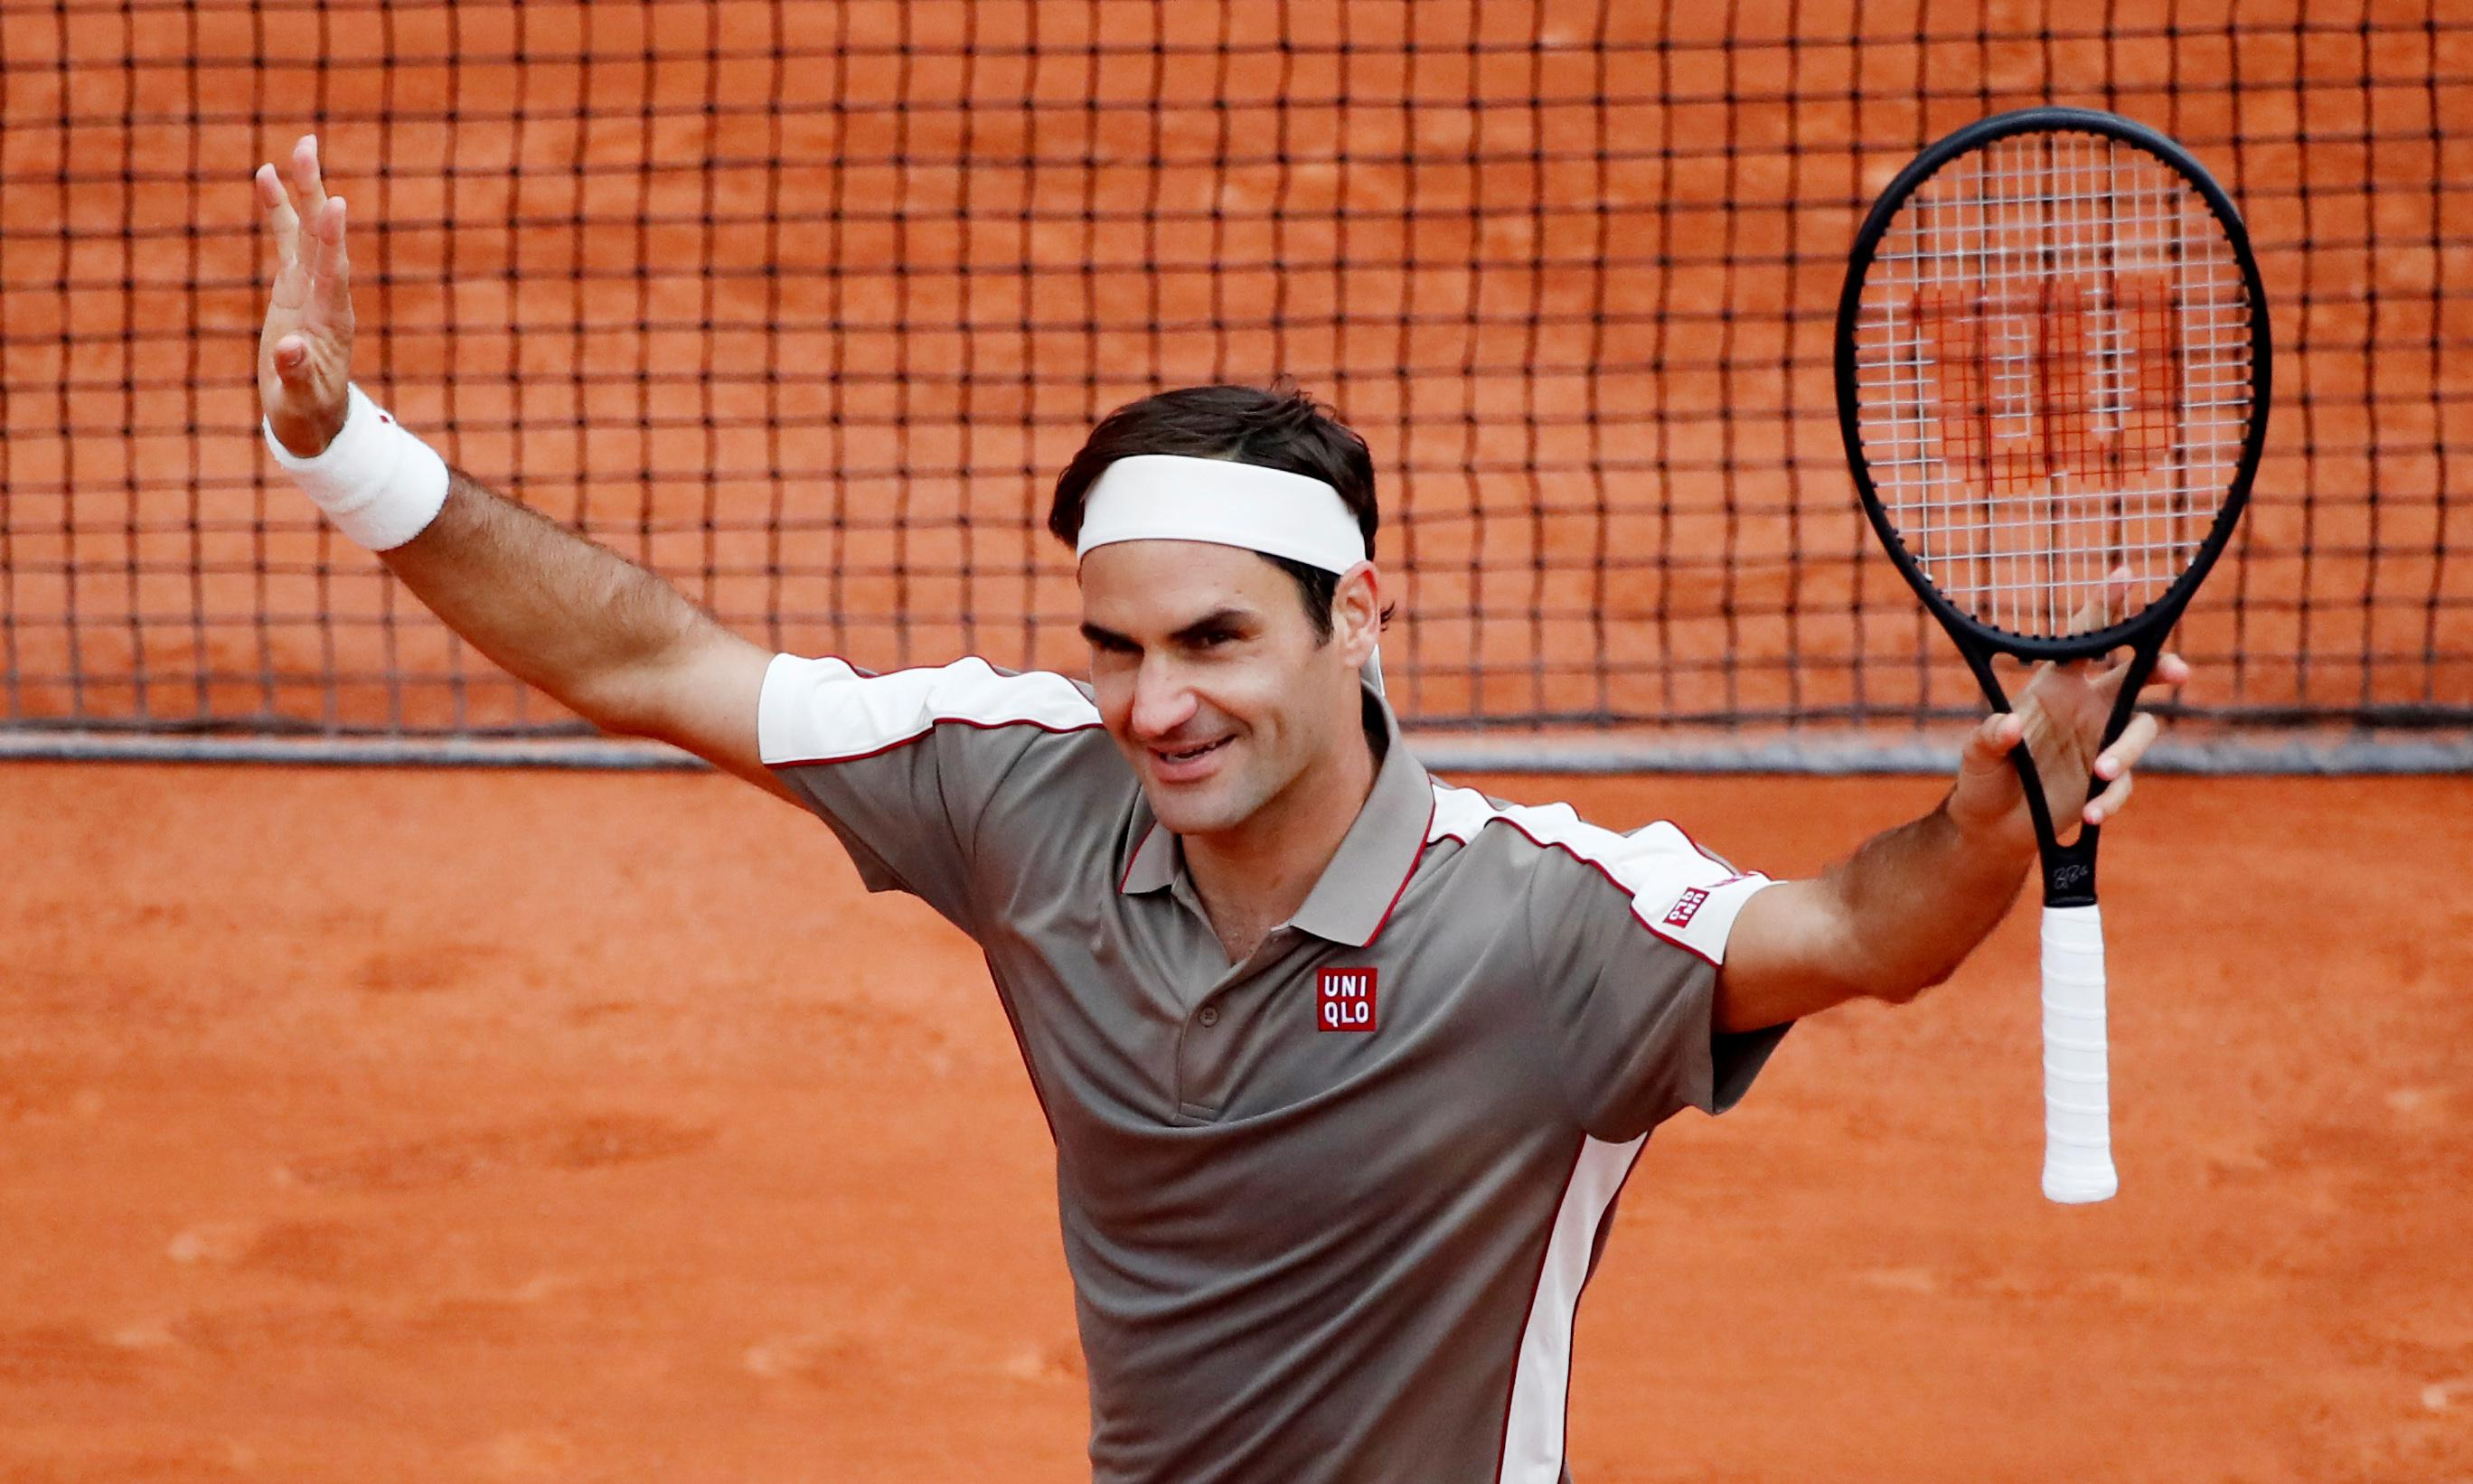 Roger Federer makes winning return to French Open after four years away